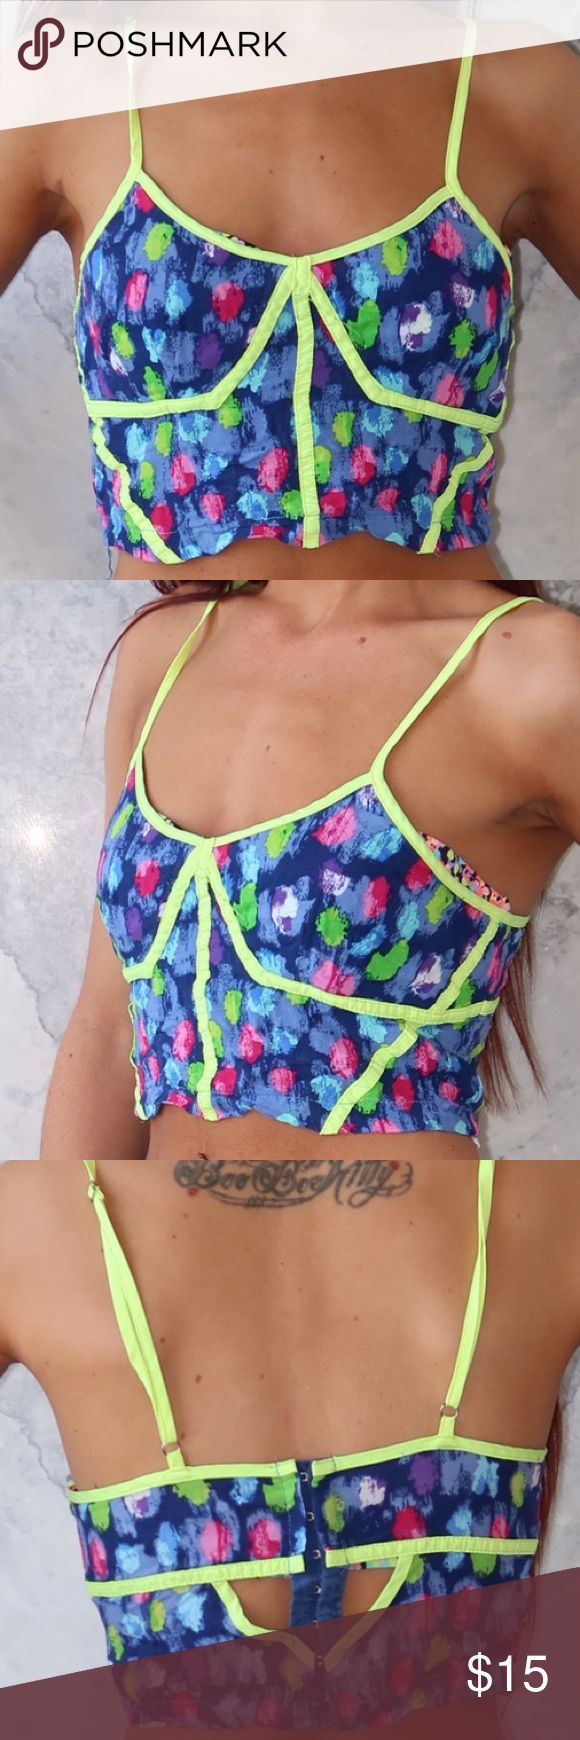 Neon Speckled Spaghetti Strap Crop Top PRE LOVED lightweight neon multi coloured speckled crop top with adjustable spaghetti straps and peep holes on the back with eyelet closures. In great condition Tops Crop Tops